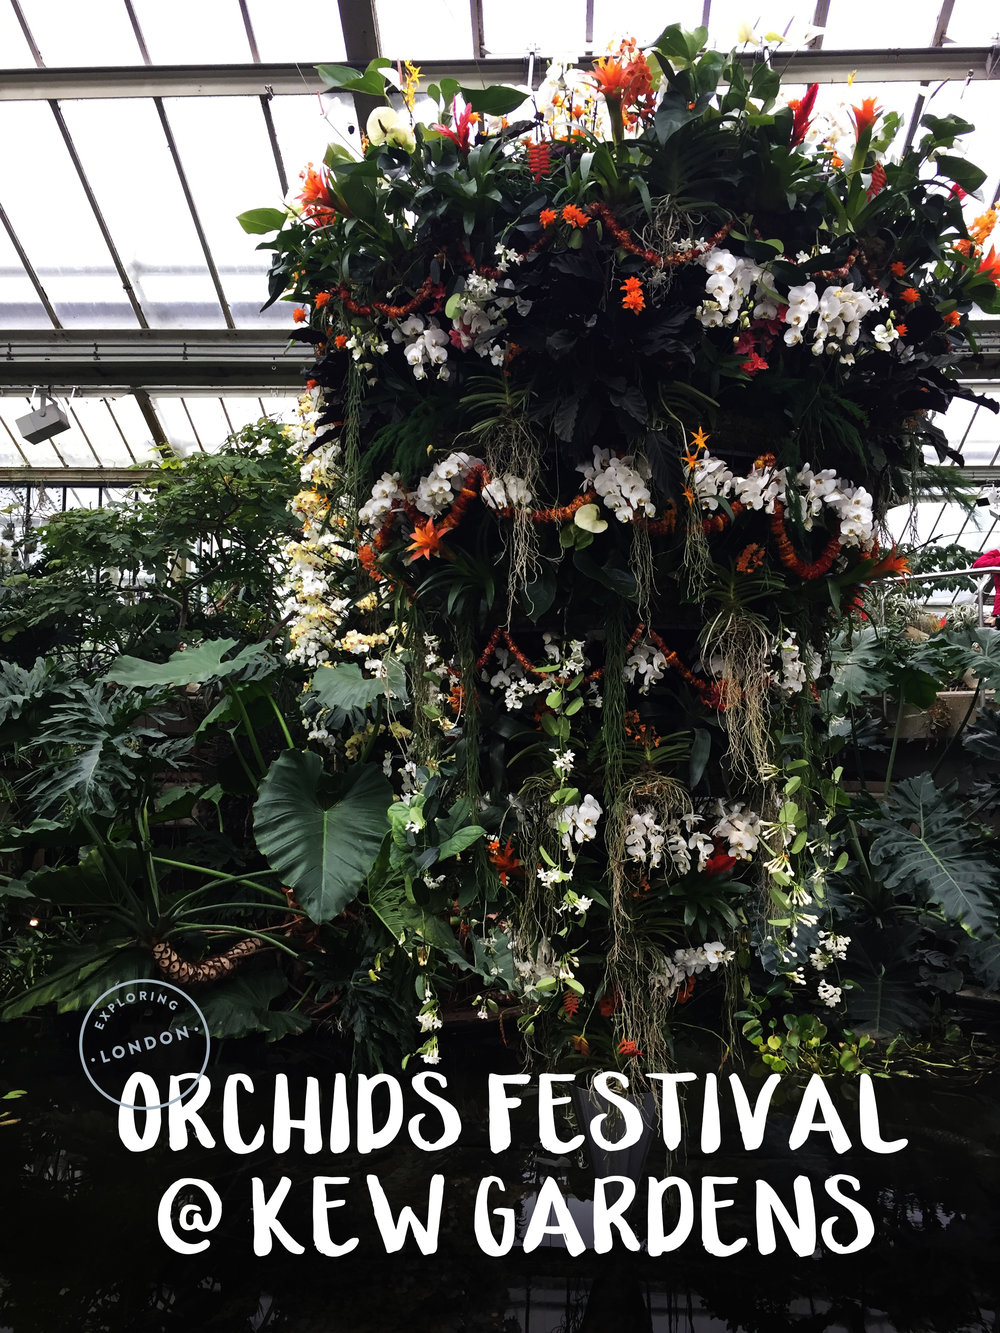 Exploring London: The Orchids Festival At Kew Gardens | Sea of Atlas